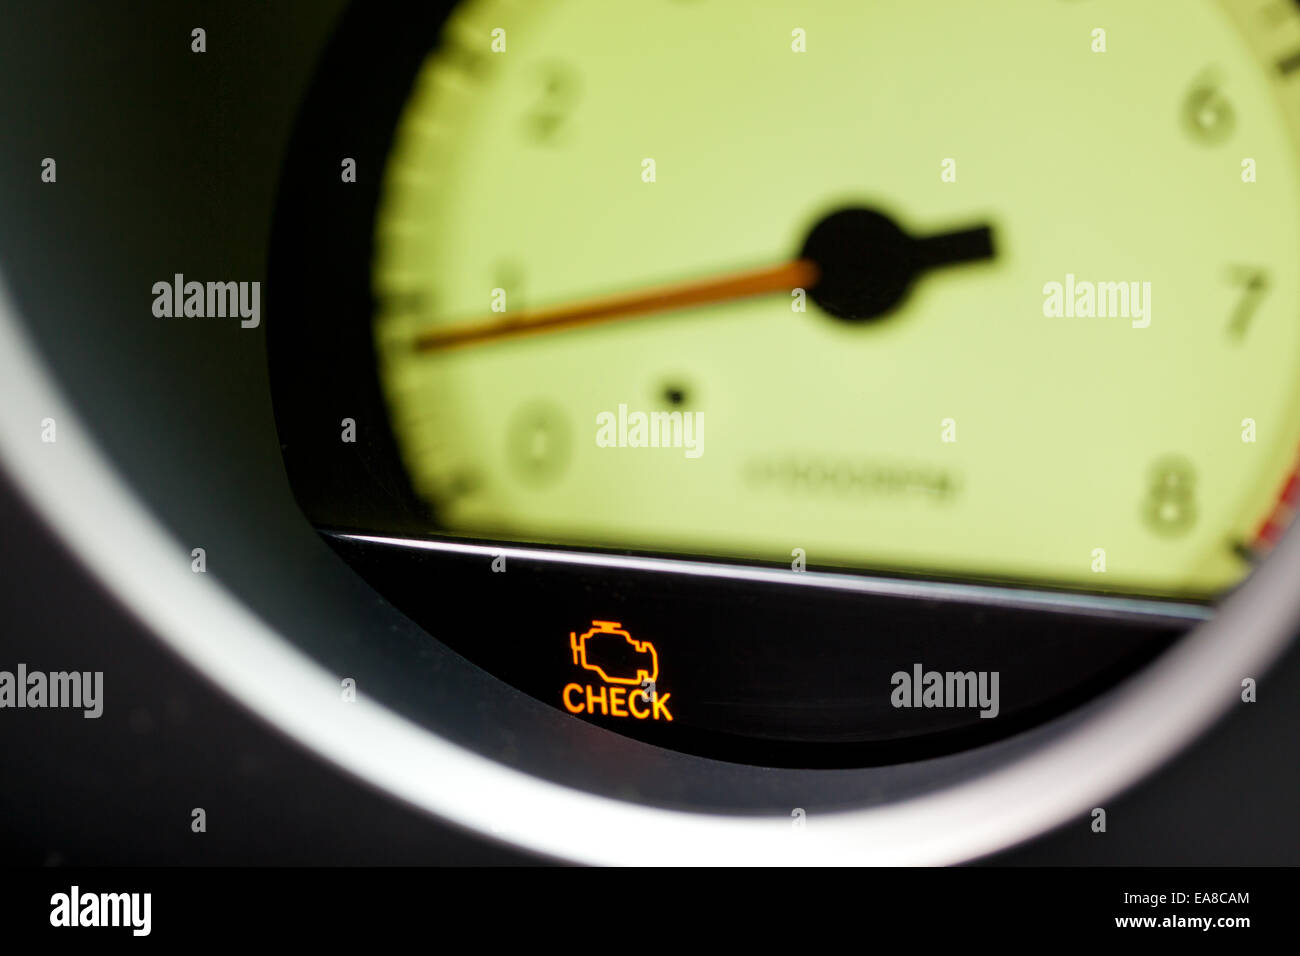 Check engine warning light - USA - Stock Image